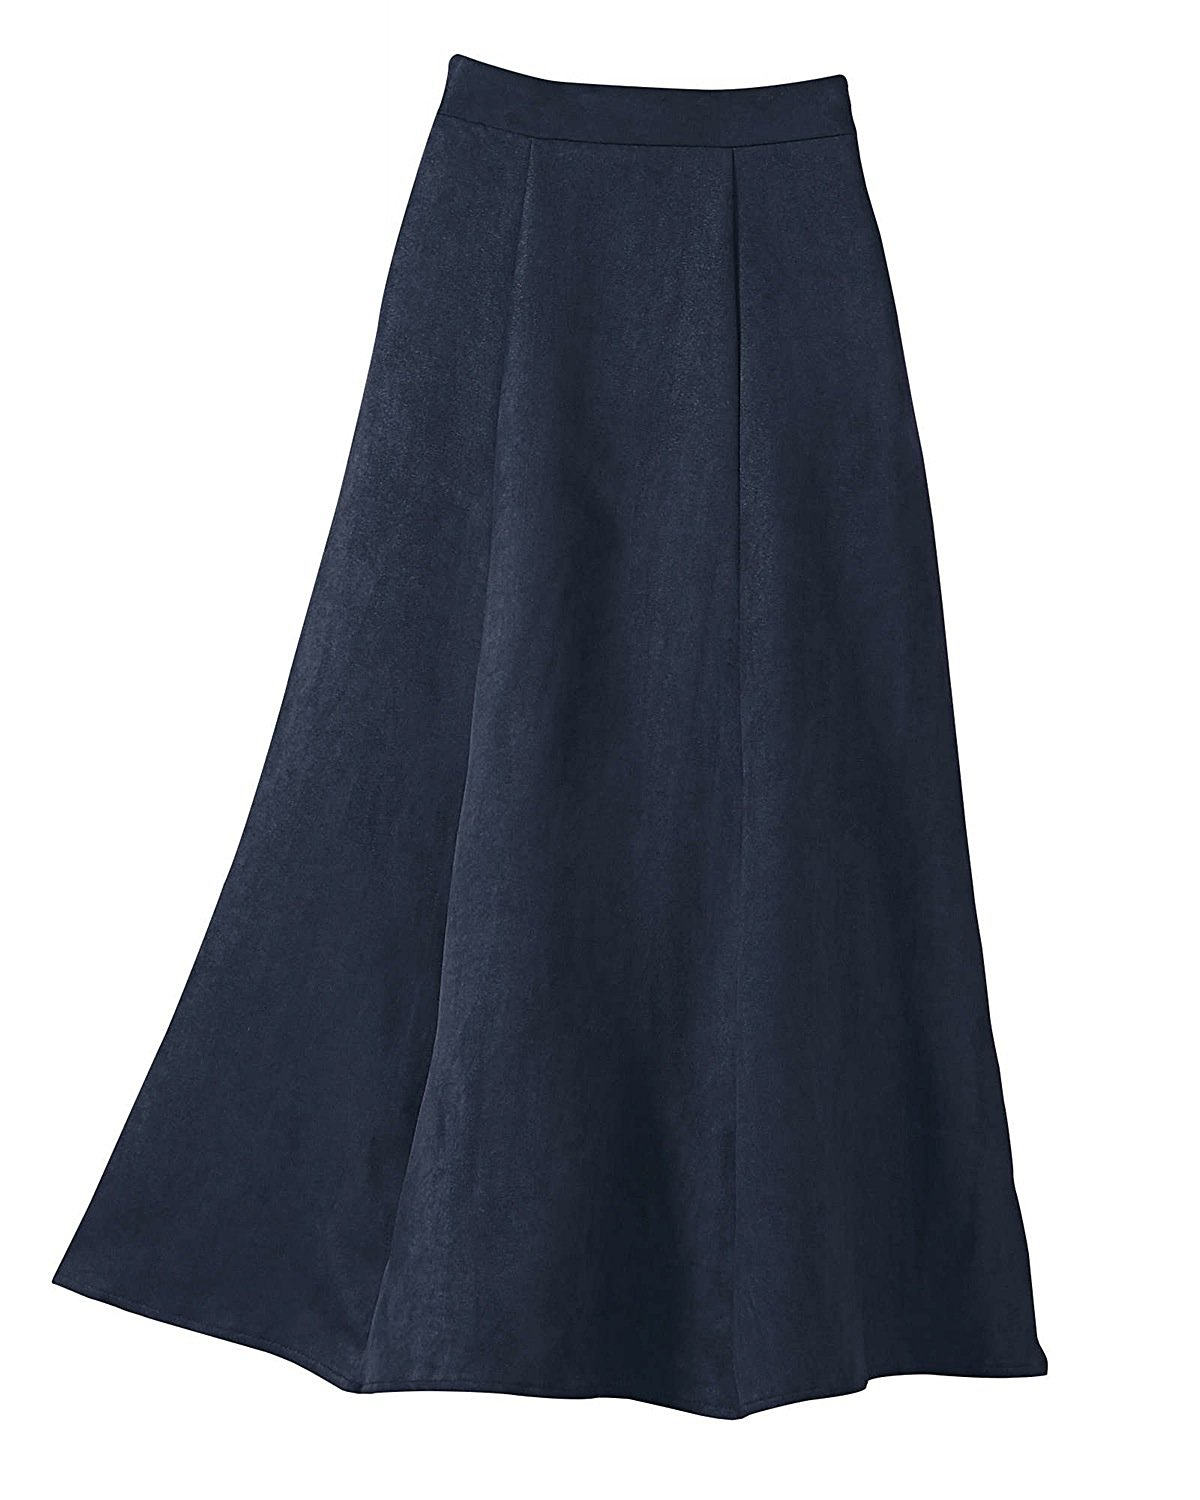 Long Suede Skirt Promotion-Shop for Promotional Long Suede Skirt ...